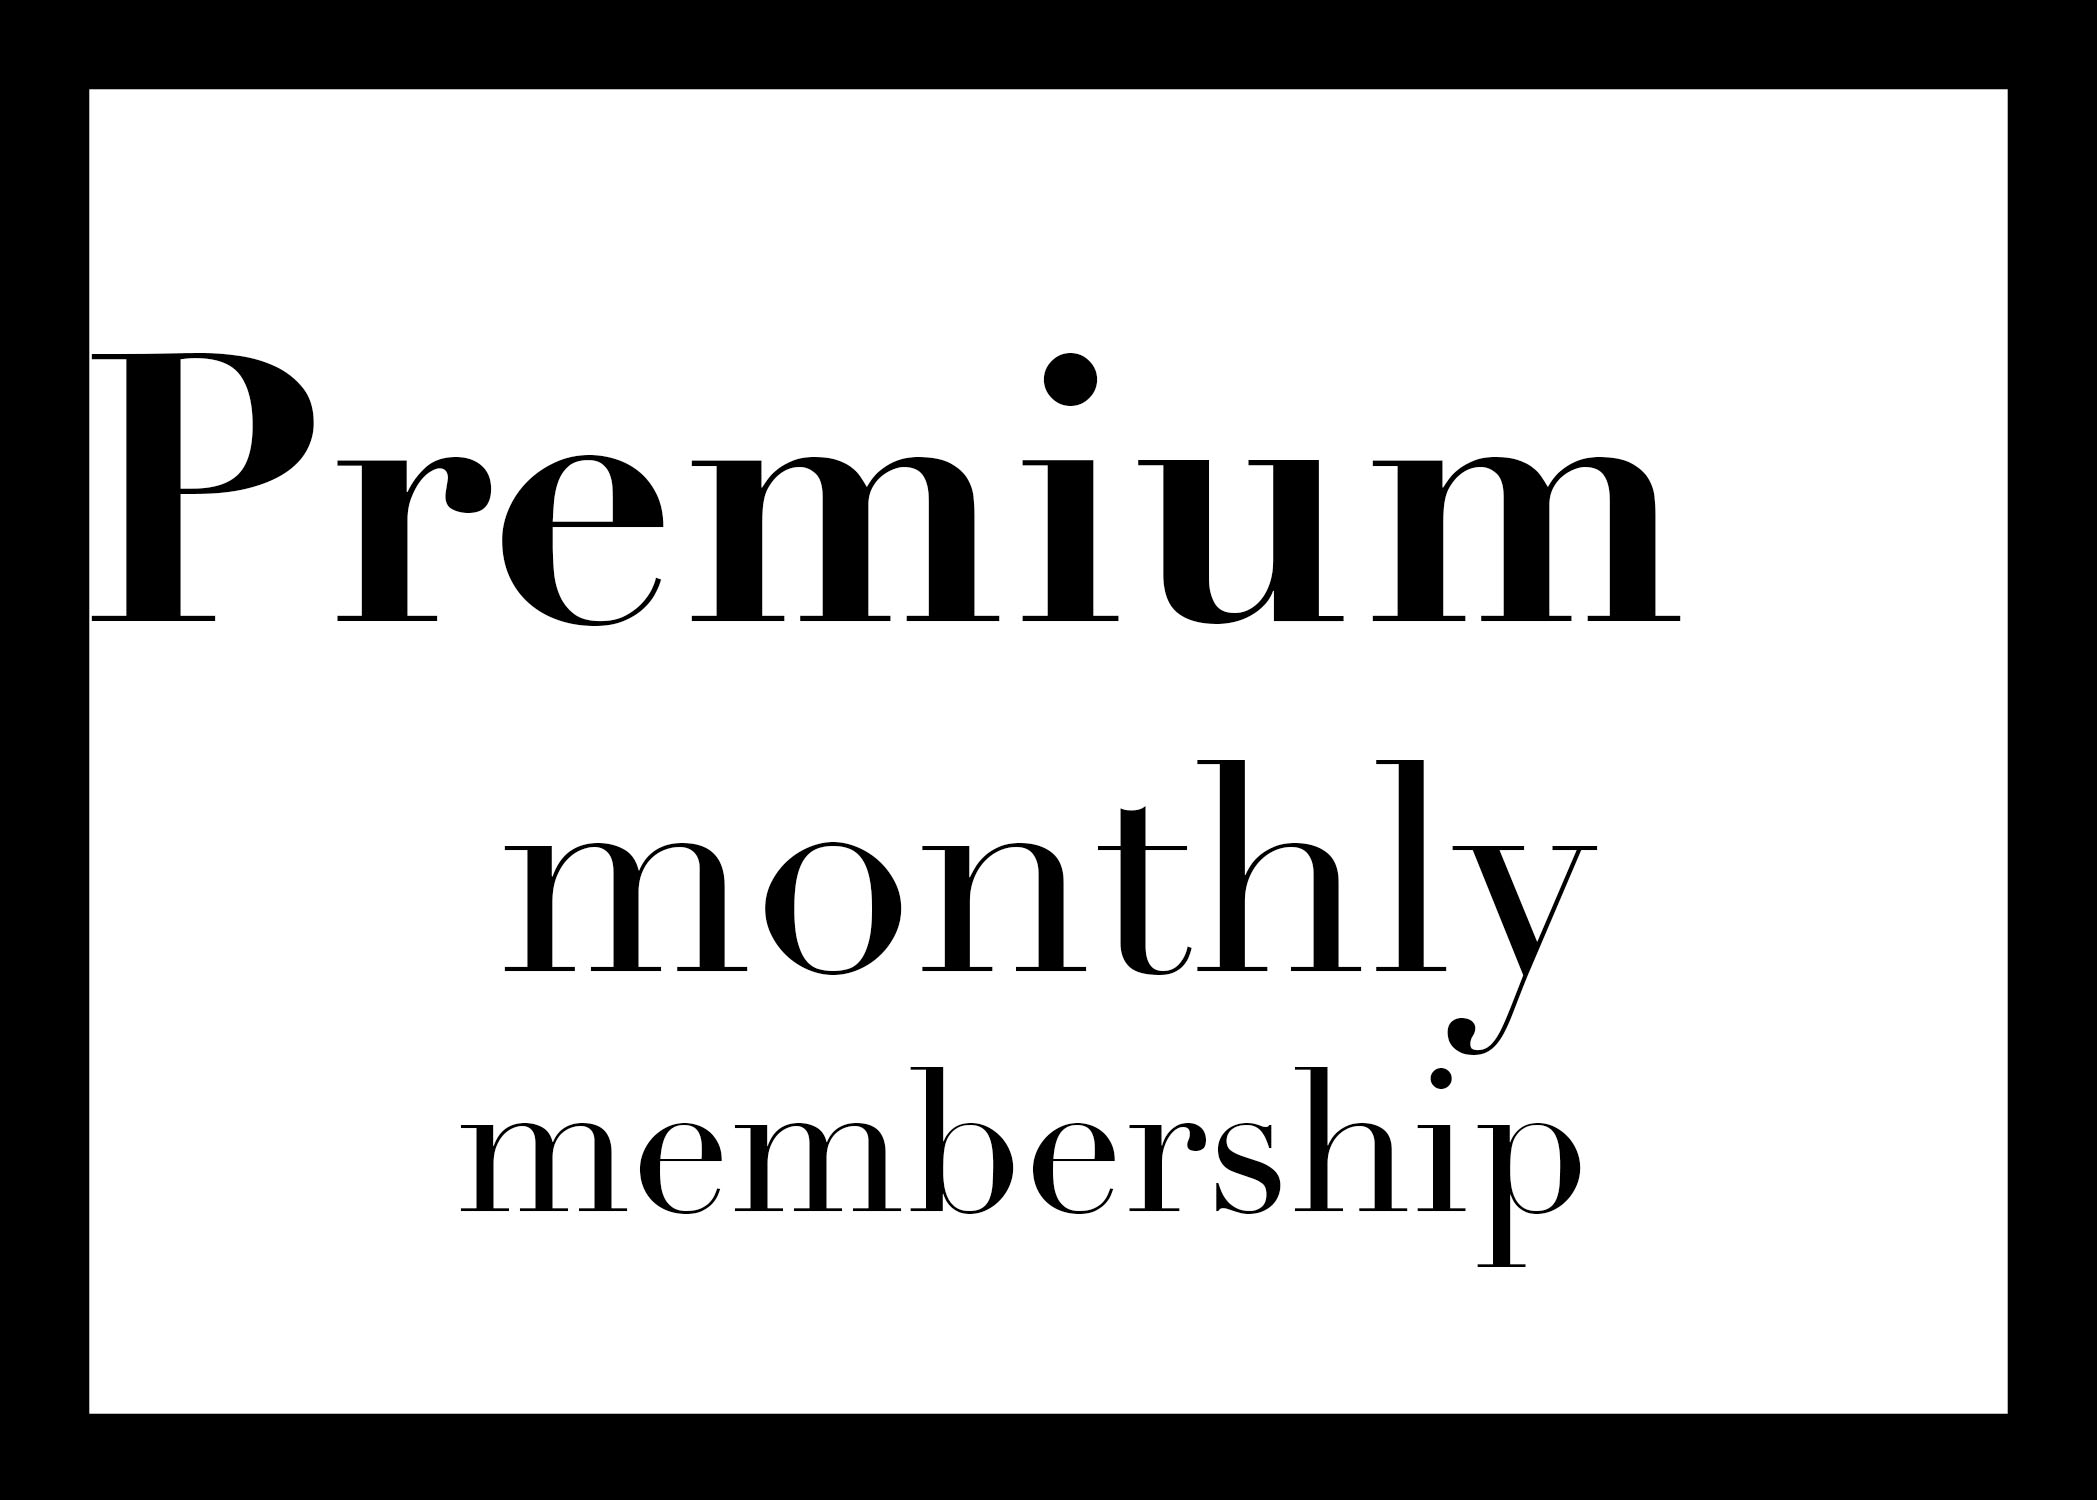 $10 OFFpremium monthly membership - Get $10 OFF the monthly unlimited rate with credit card autopay agreement. $139/month.